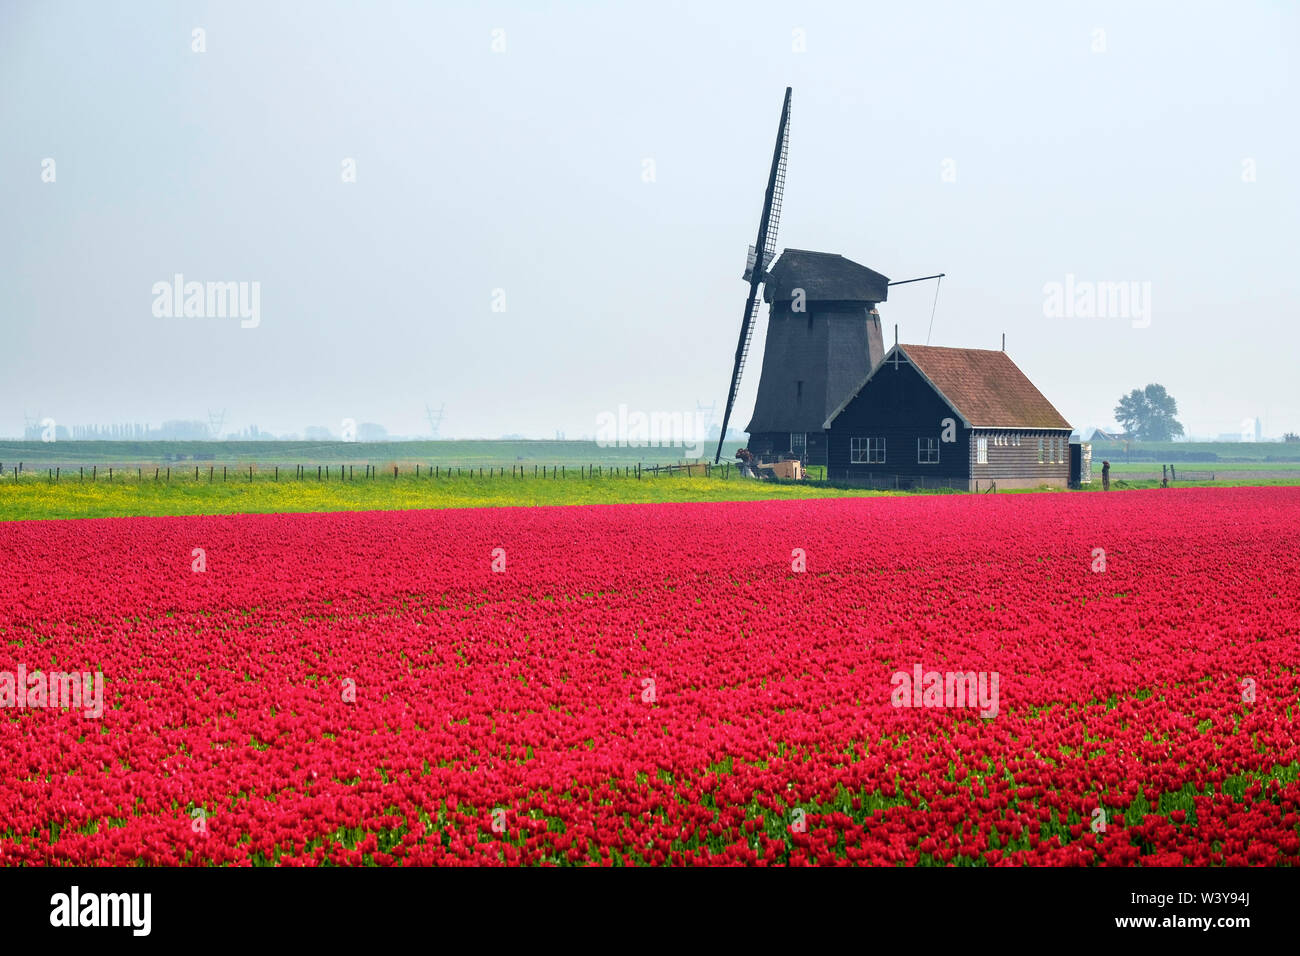 Windmill and red tulip fields in spring near village of Schermerhorn, North Holland, Netherlands - Stock Image